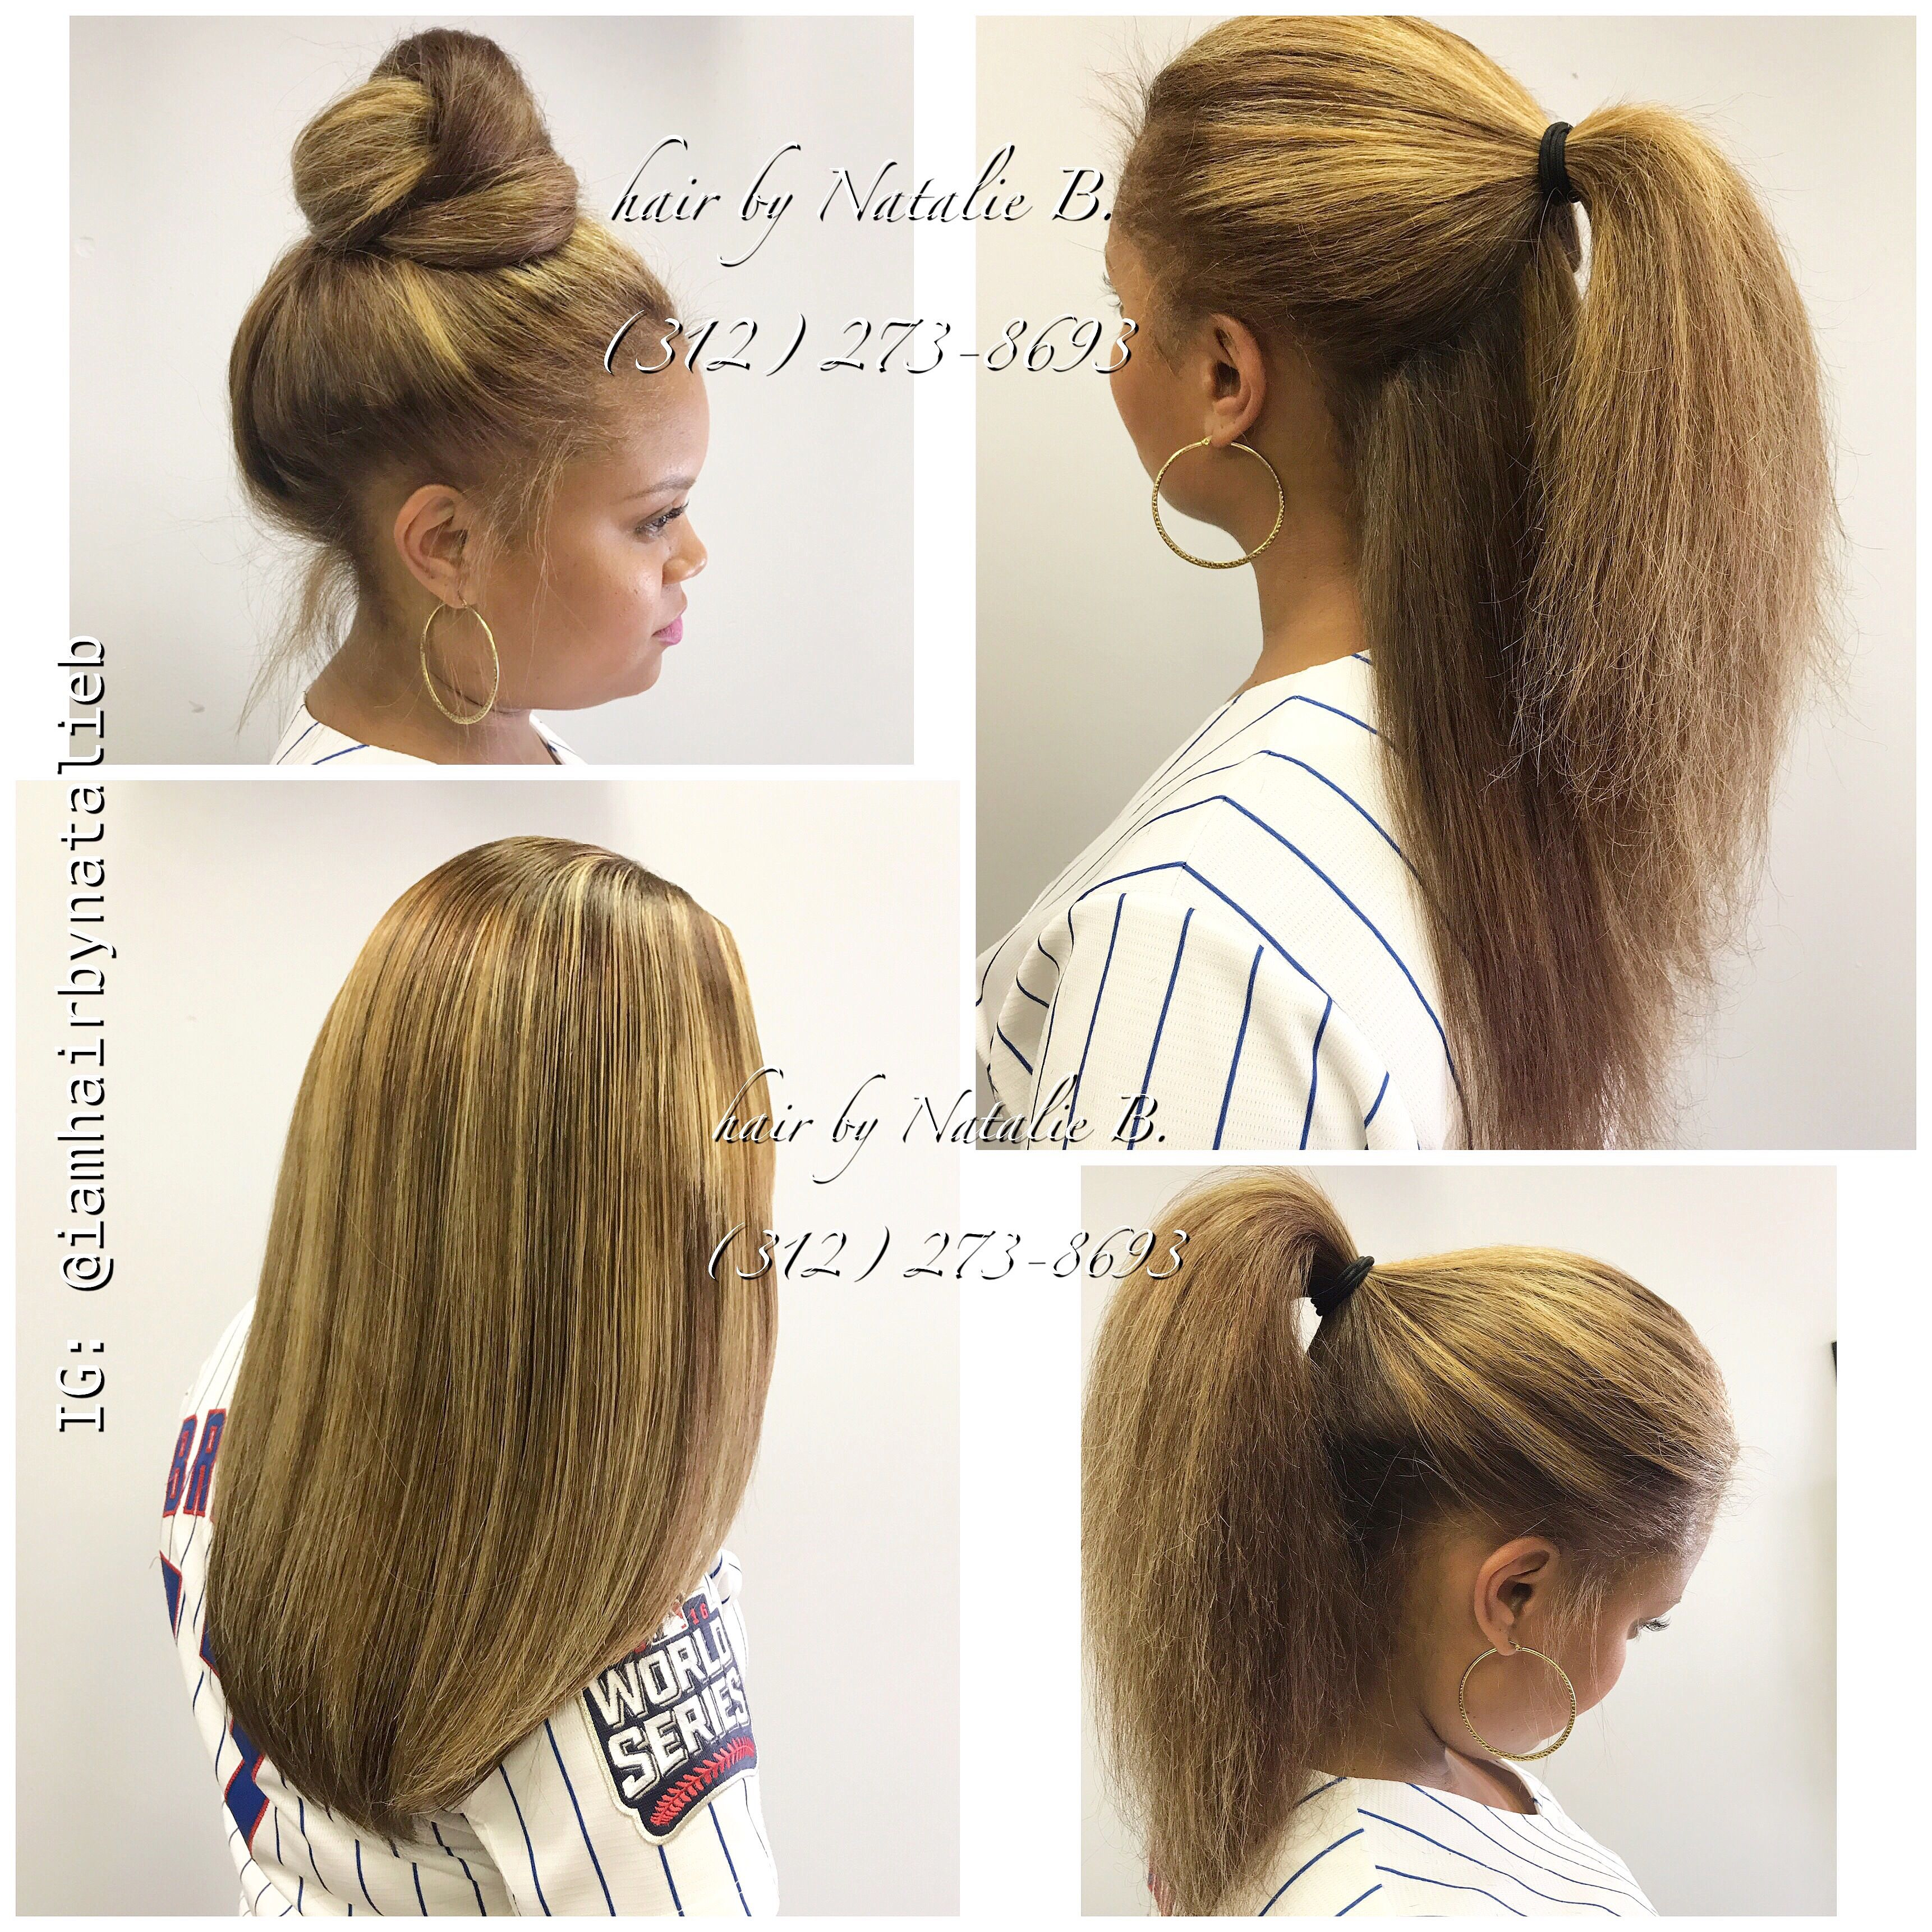 To acquire How to versatile a wear sew in pictures trends